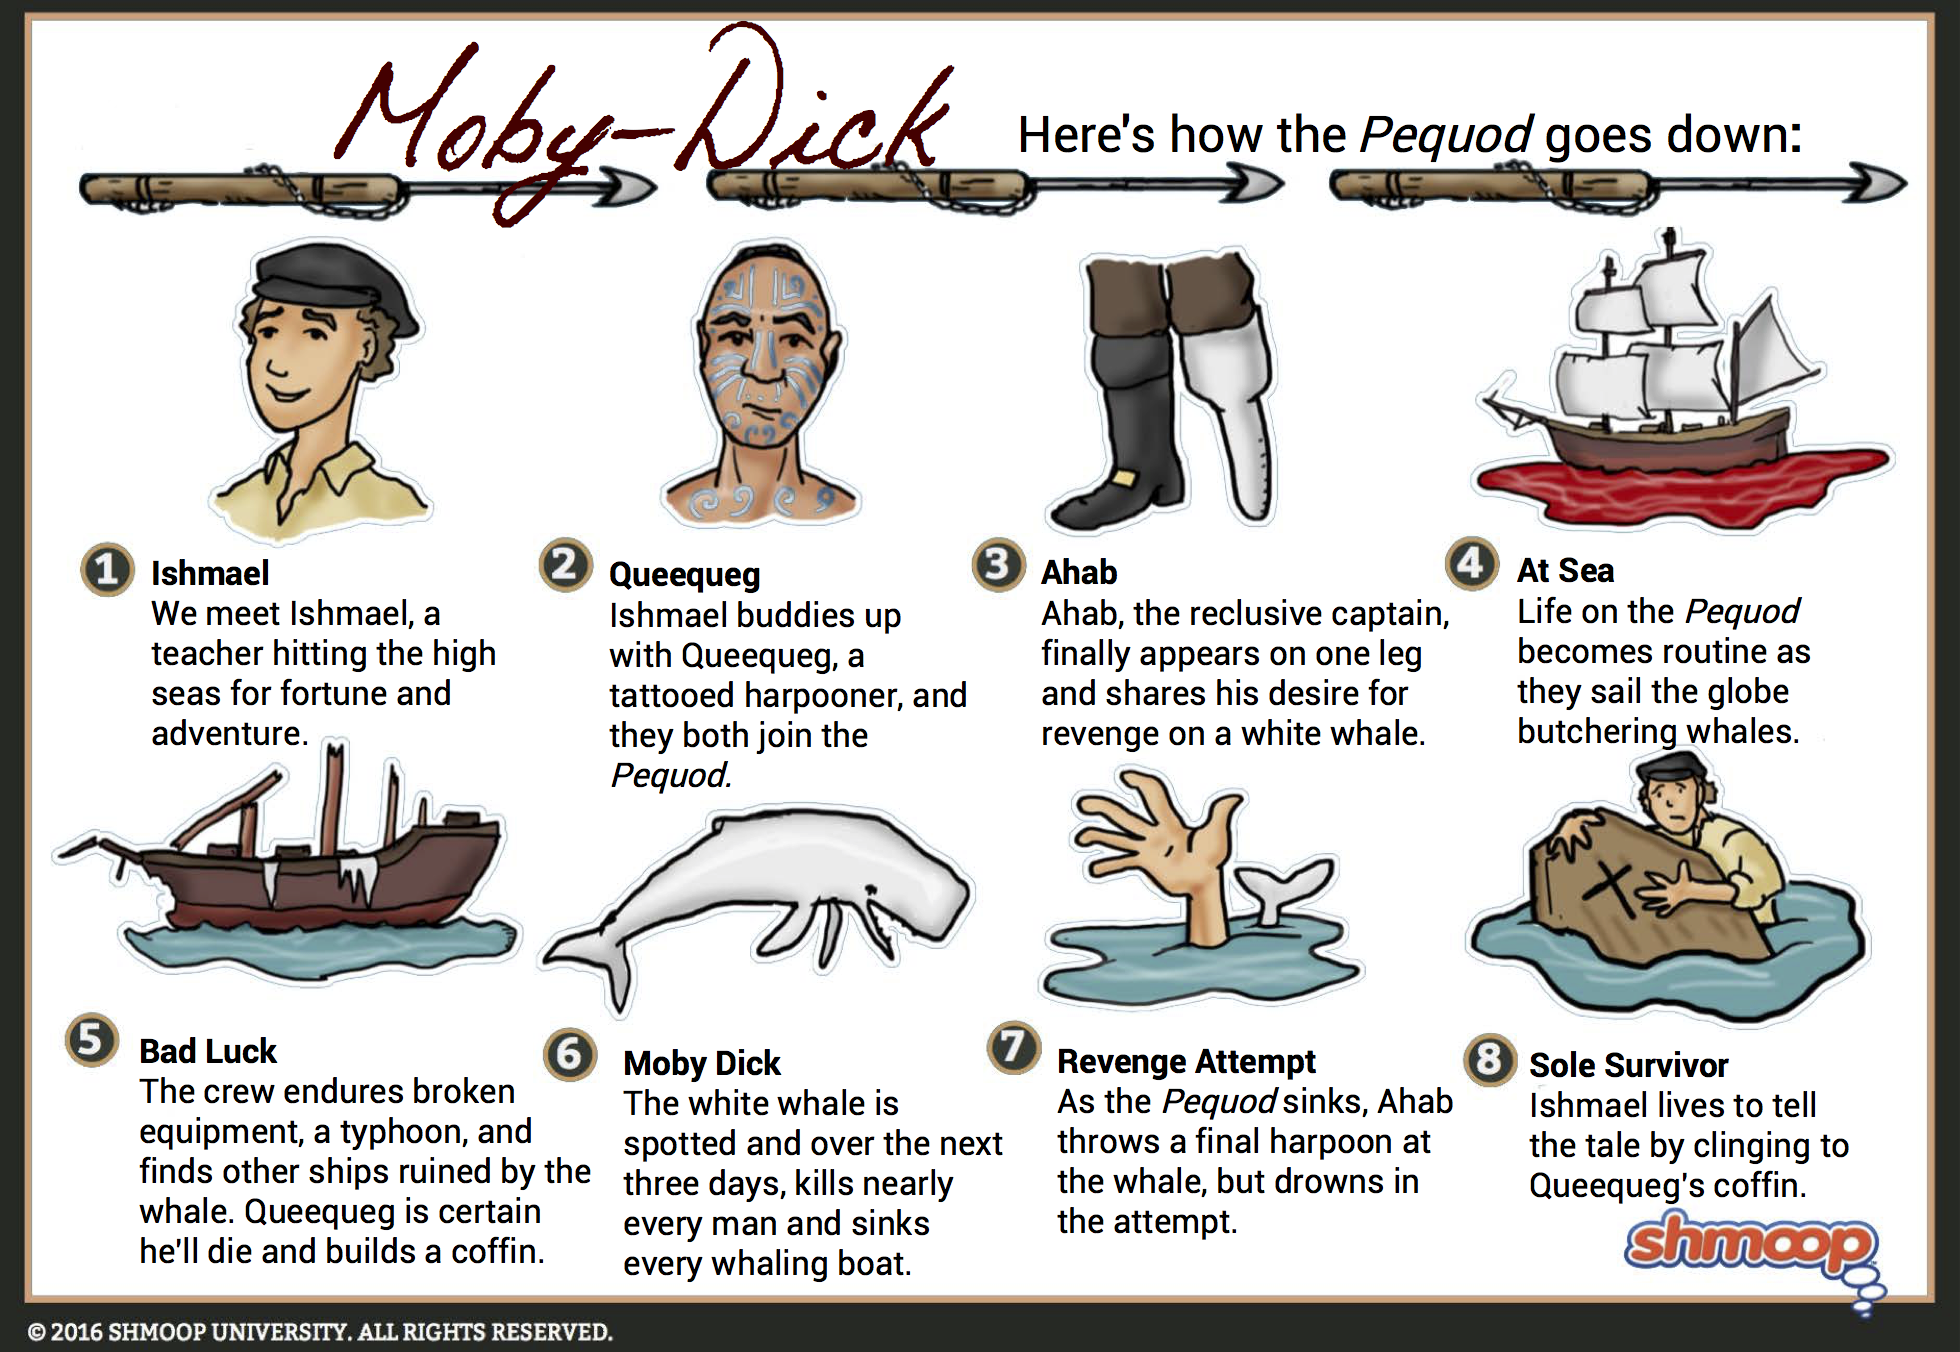 symbolism in moby dick Essay on symbolism in melville's moby dick the classic sea-faring tale includes many symbolic images let paper masters show you the symbolism in moby dick.